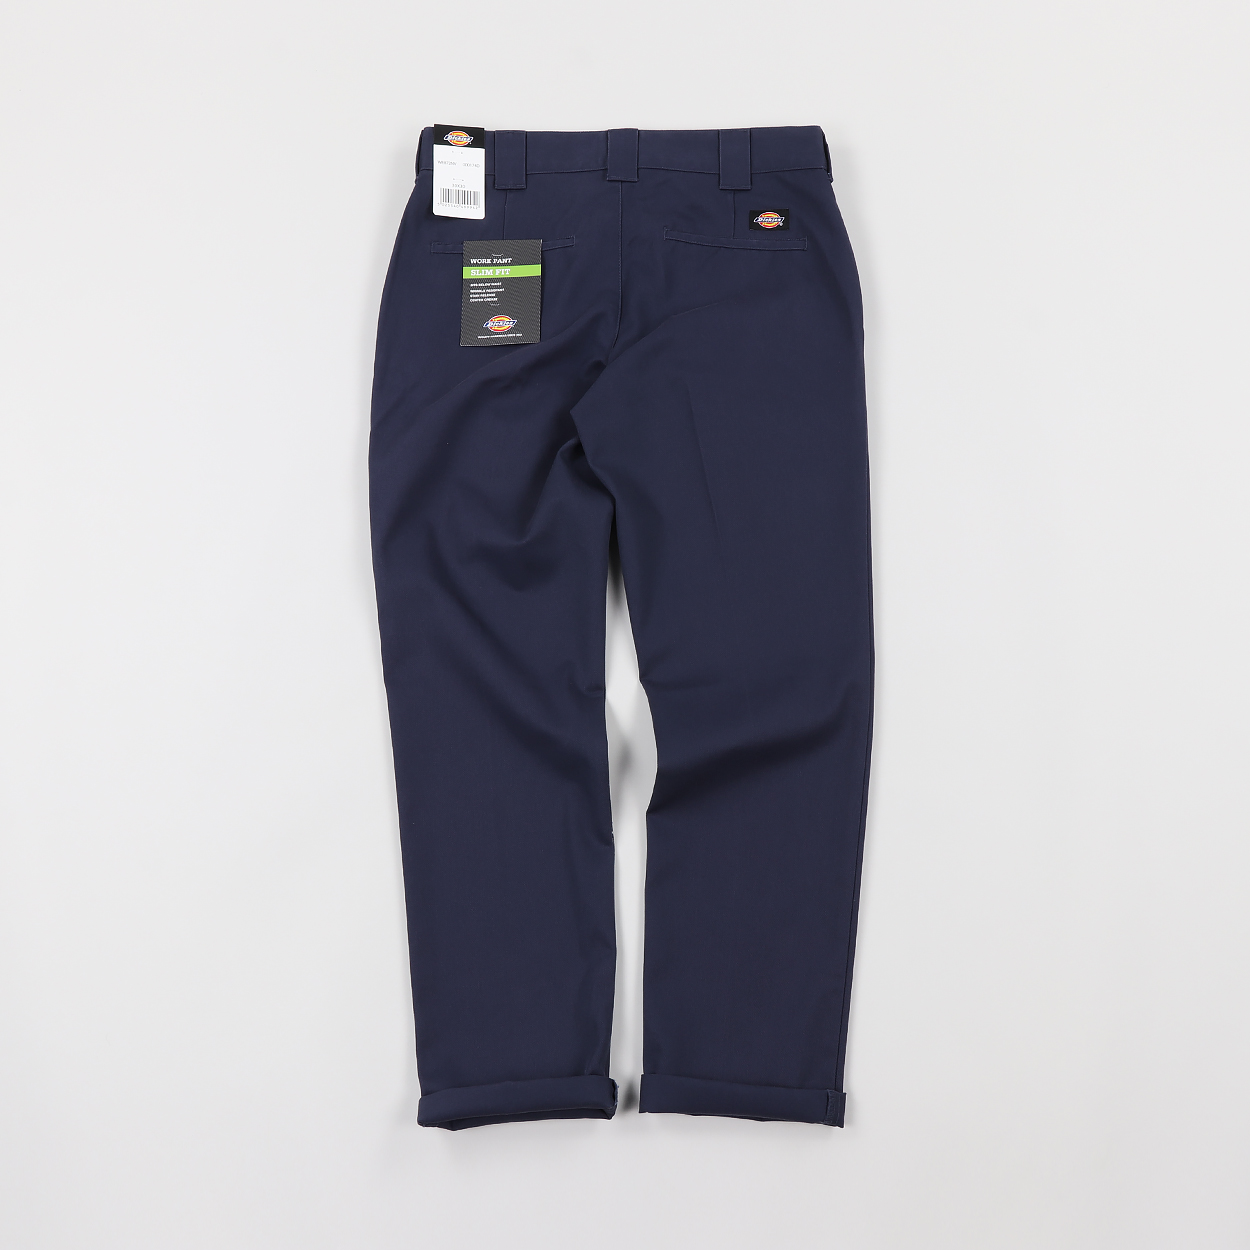 4984b0e8a838e3 A pair of slim fitting workpants from one of Dickies' most popular lines.  Made from a soft yet durable blend of cotton and polyester in a twill weave  with a ...